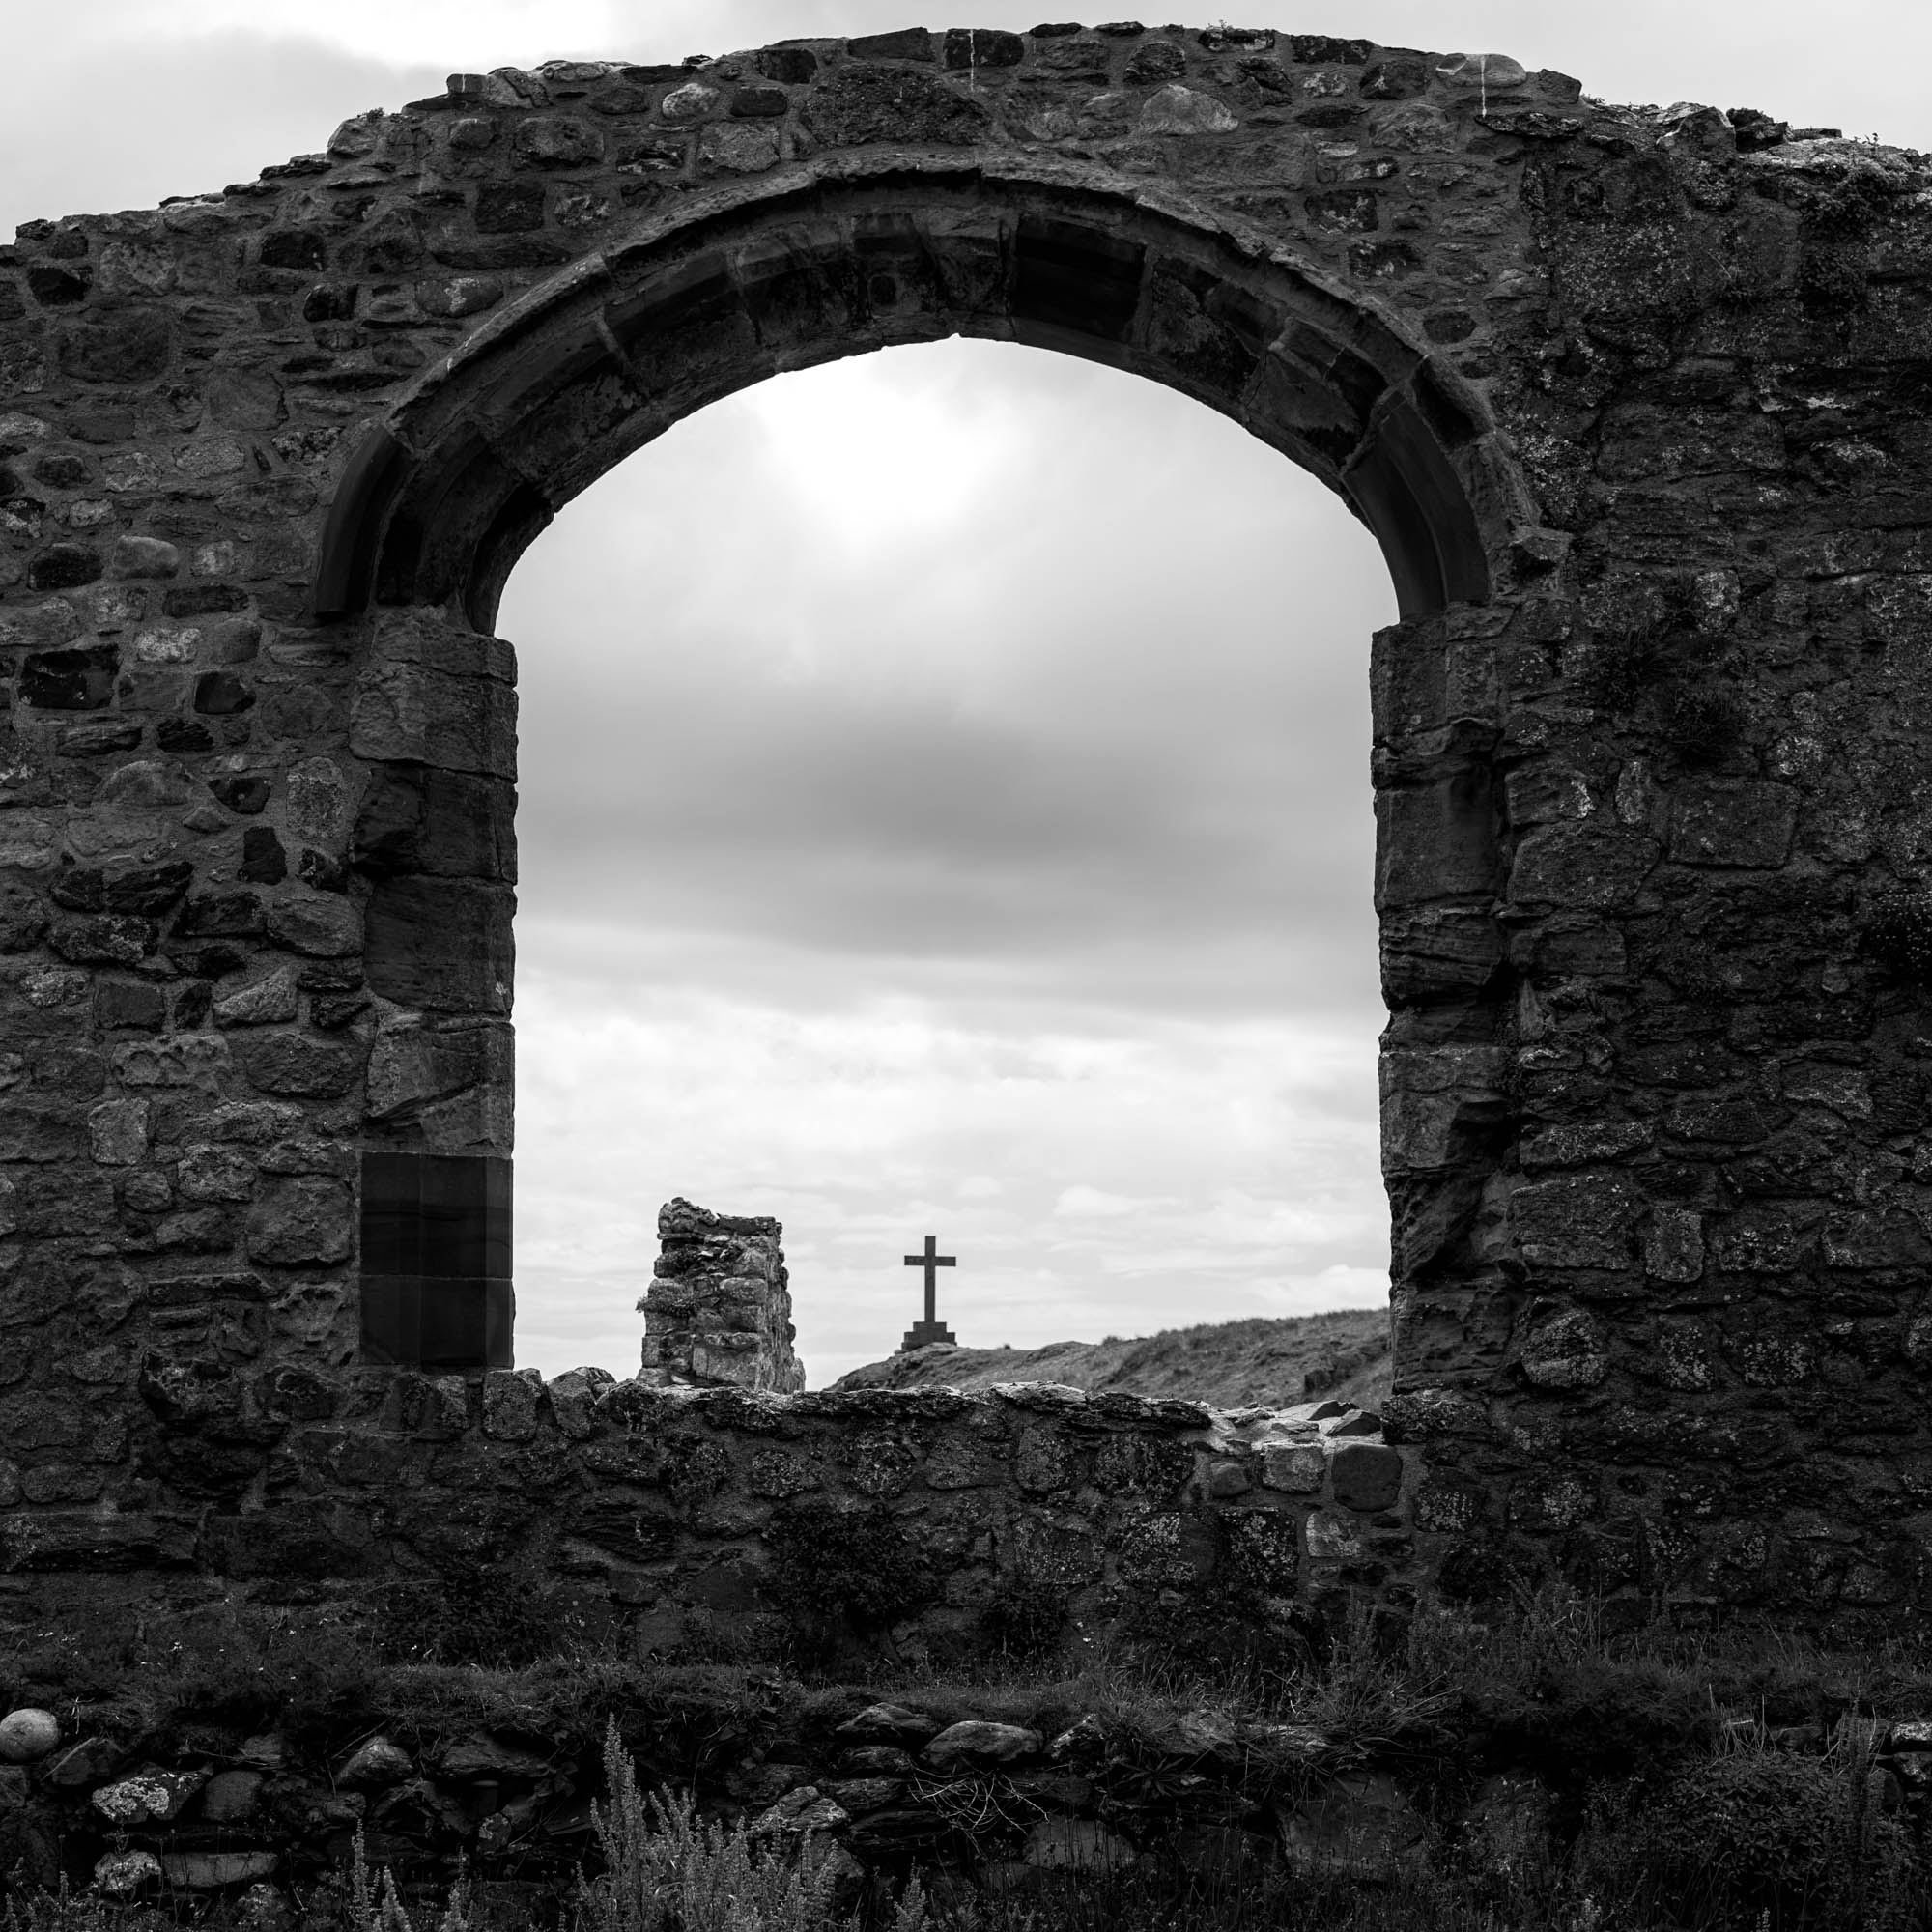 Remains from an old church on Llanddwyn Island